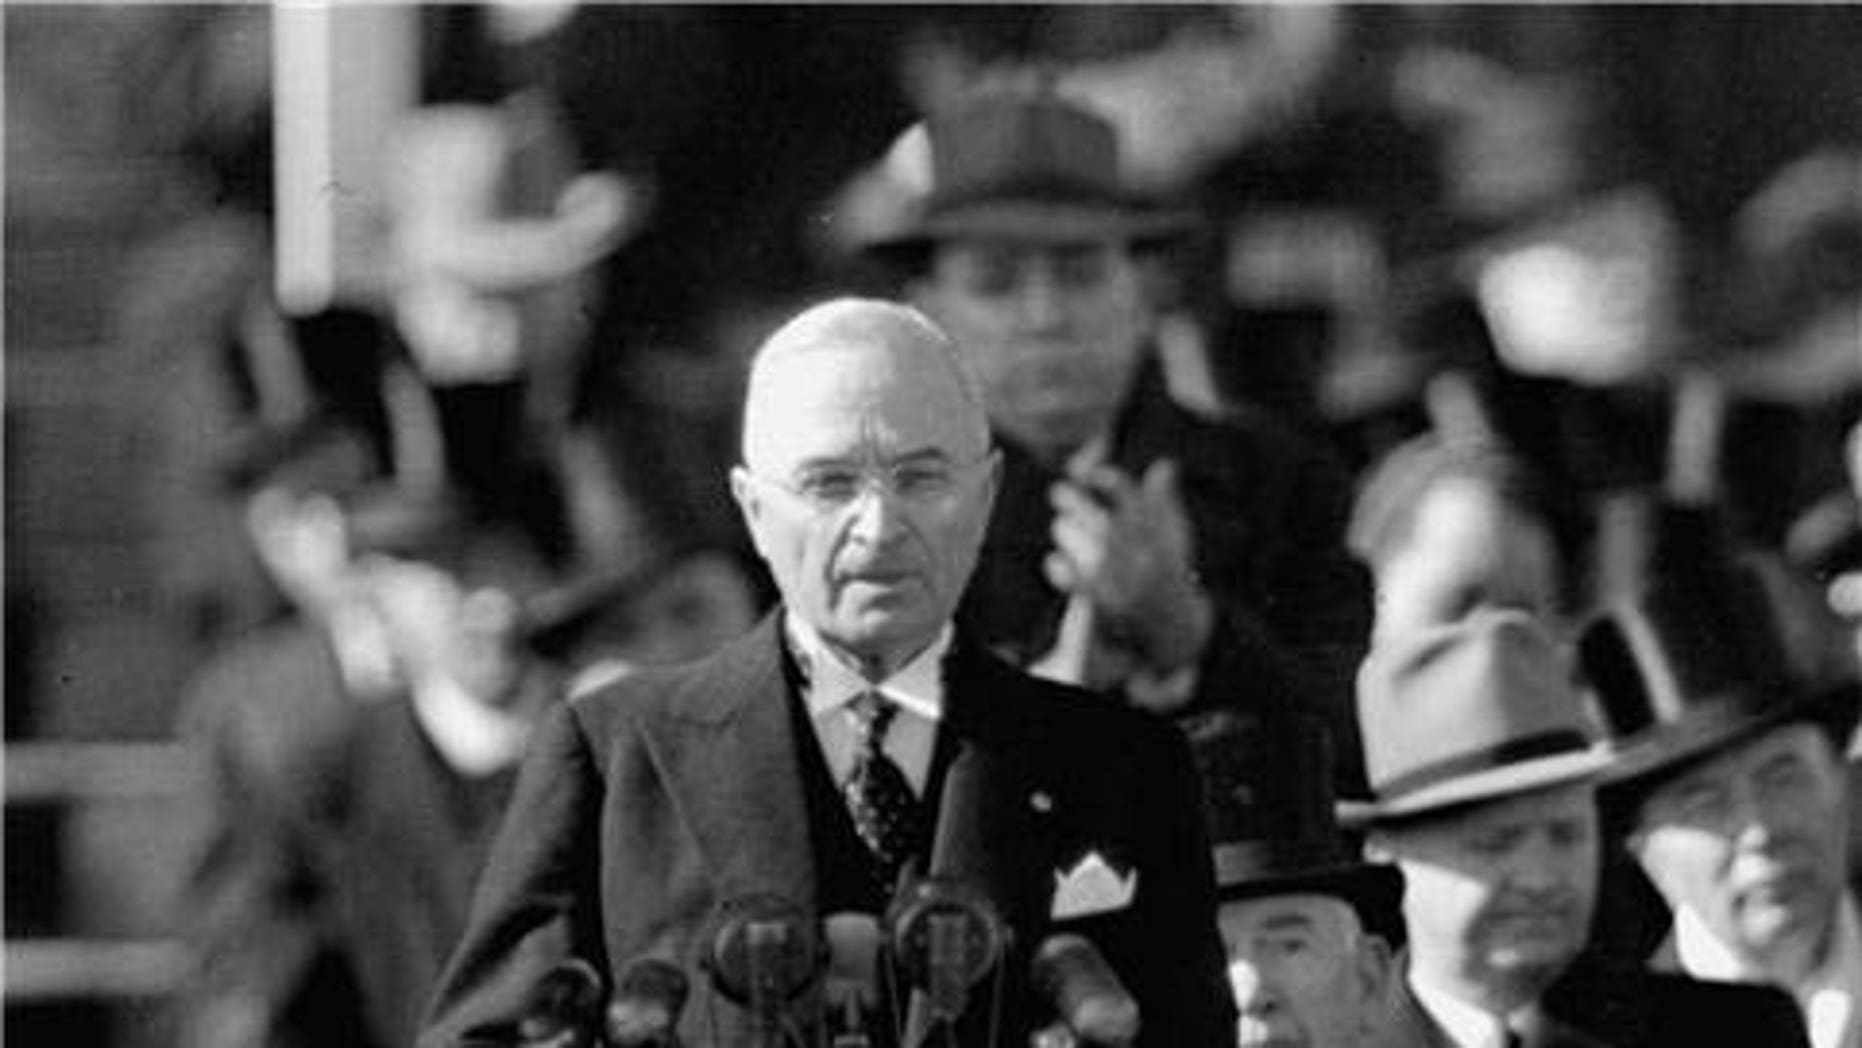 President Truman delivers his inaugual address in 1949 (AP Photo)